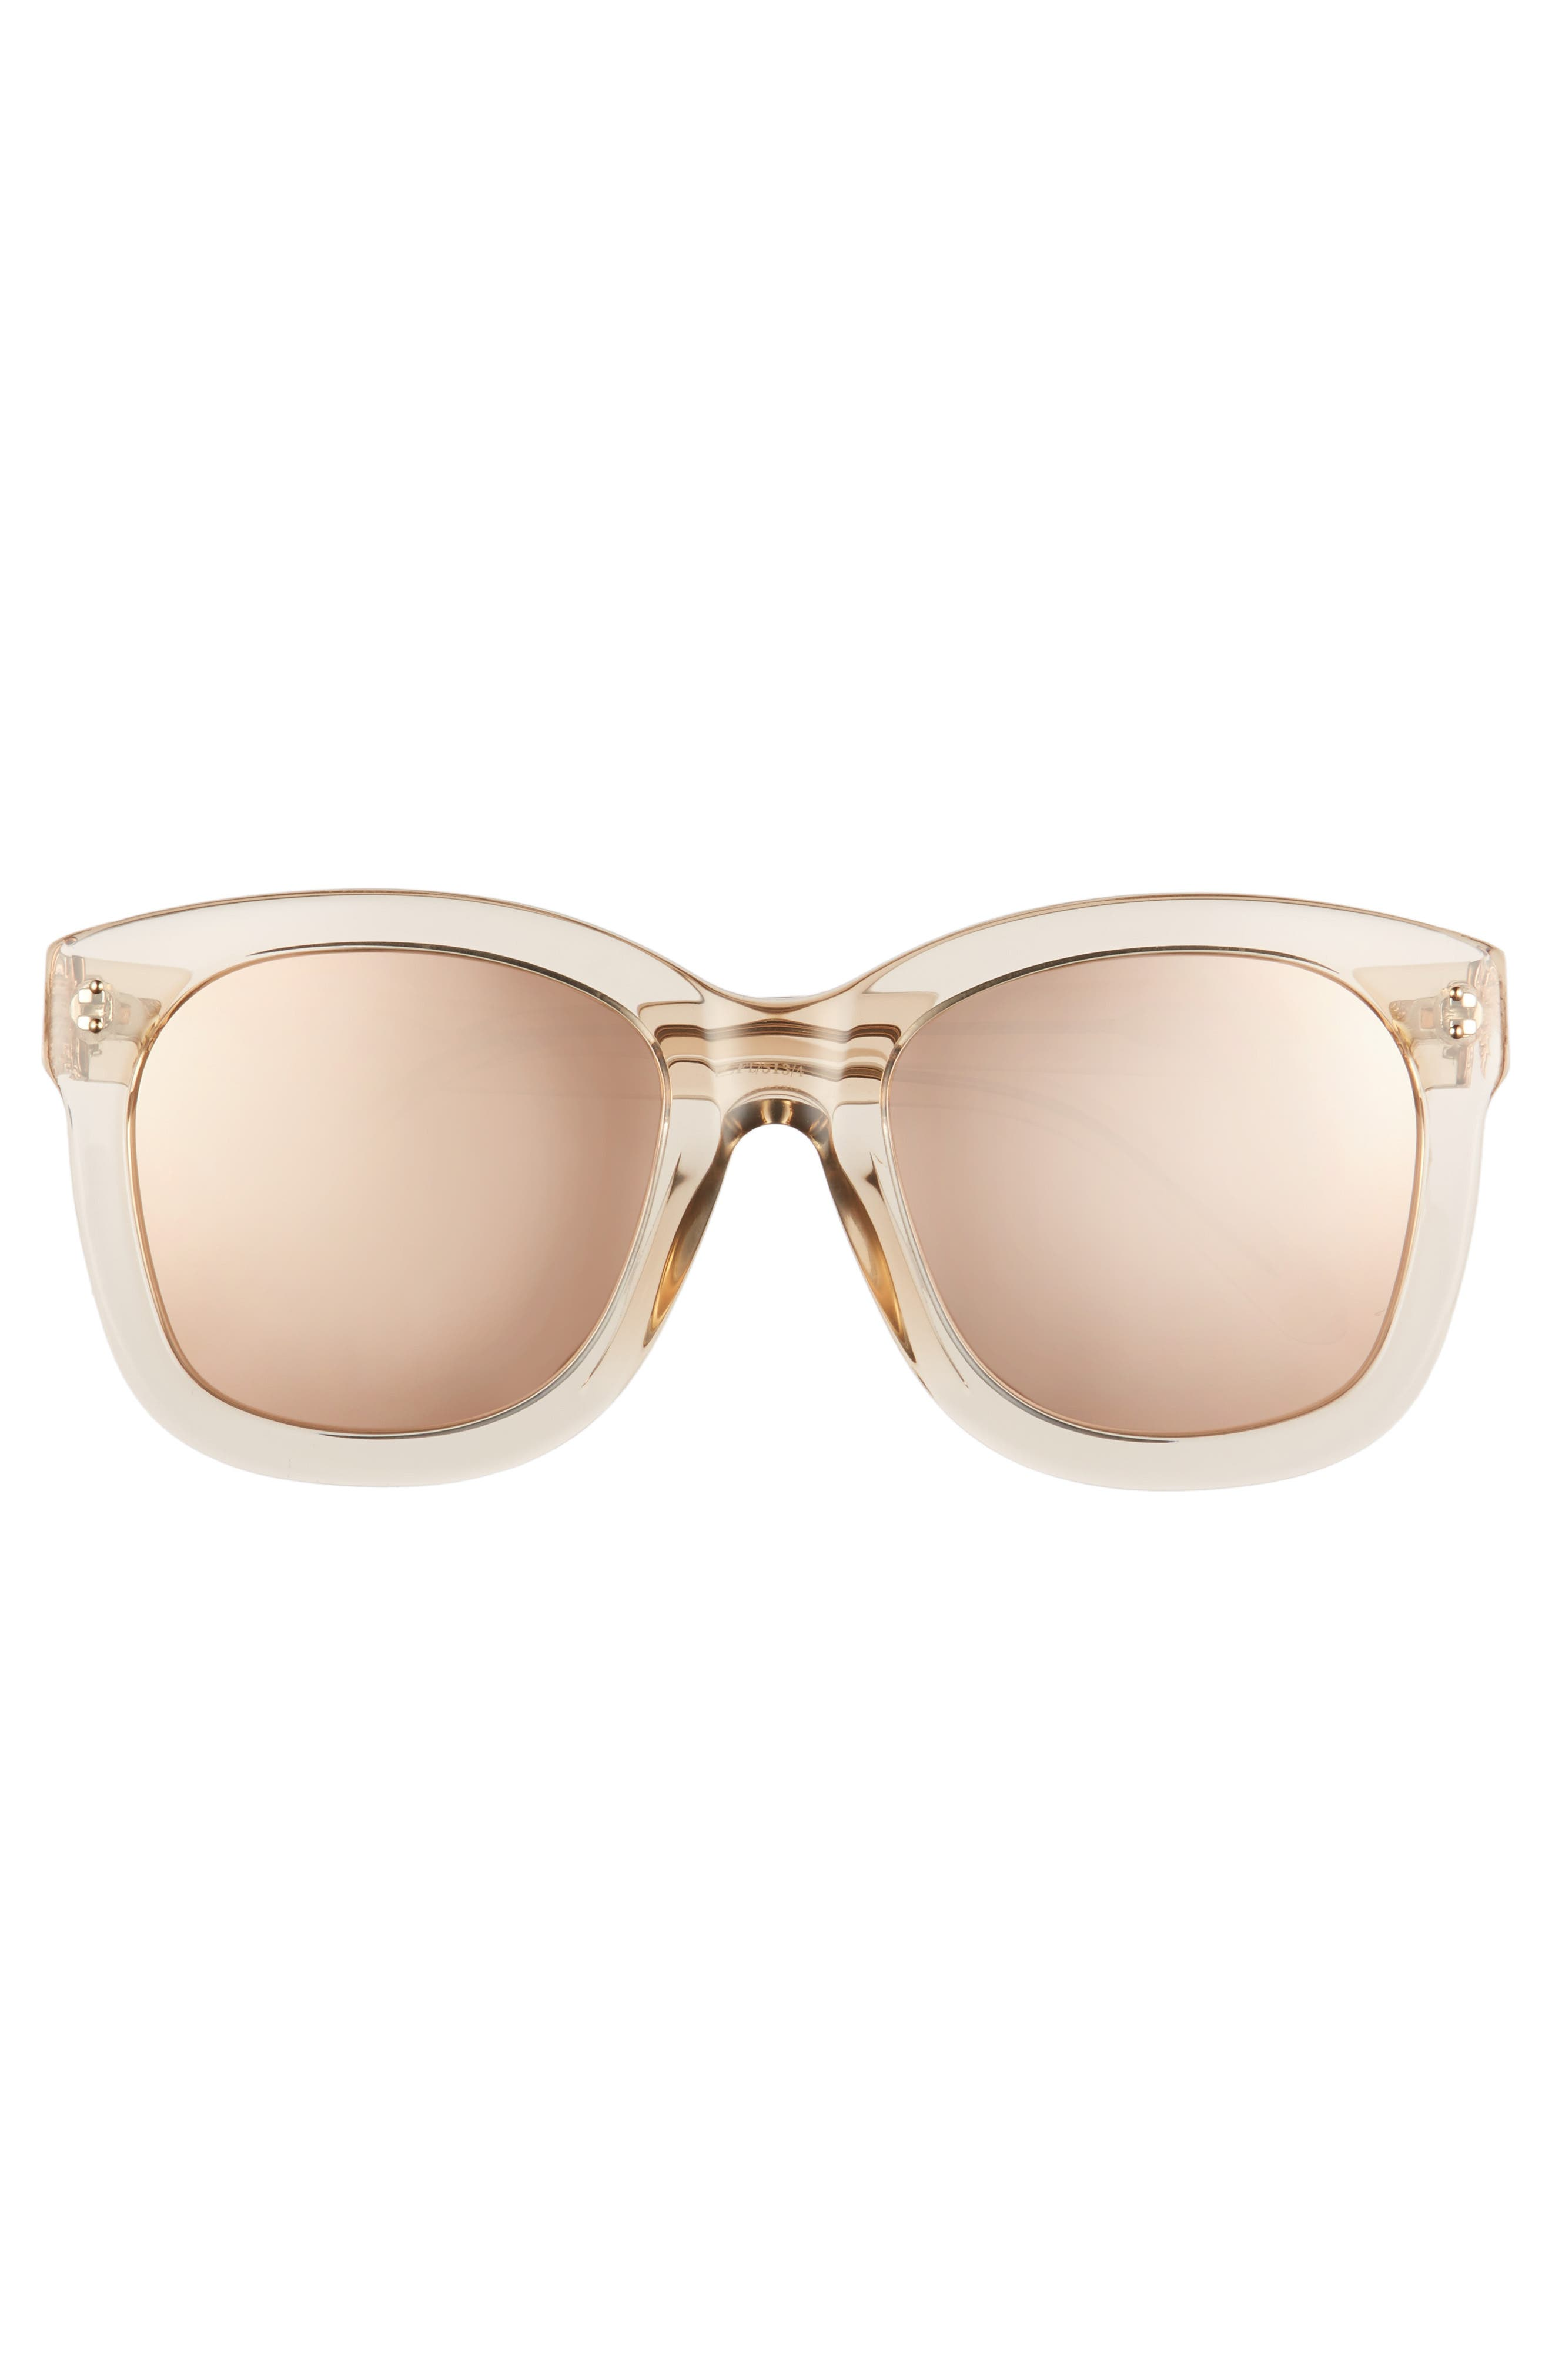 56mm Mirrored Sunglasses,                             Alternate thumbnail 3, color,                             Ash/ Rose Gold